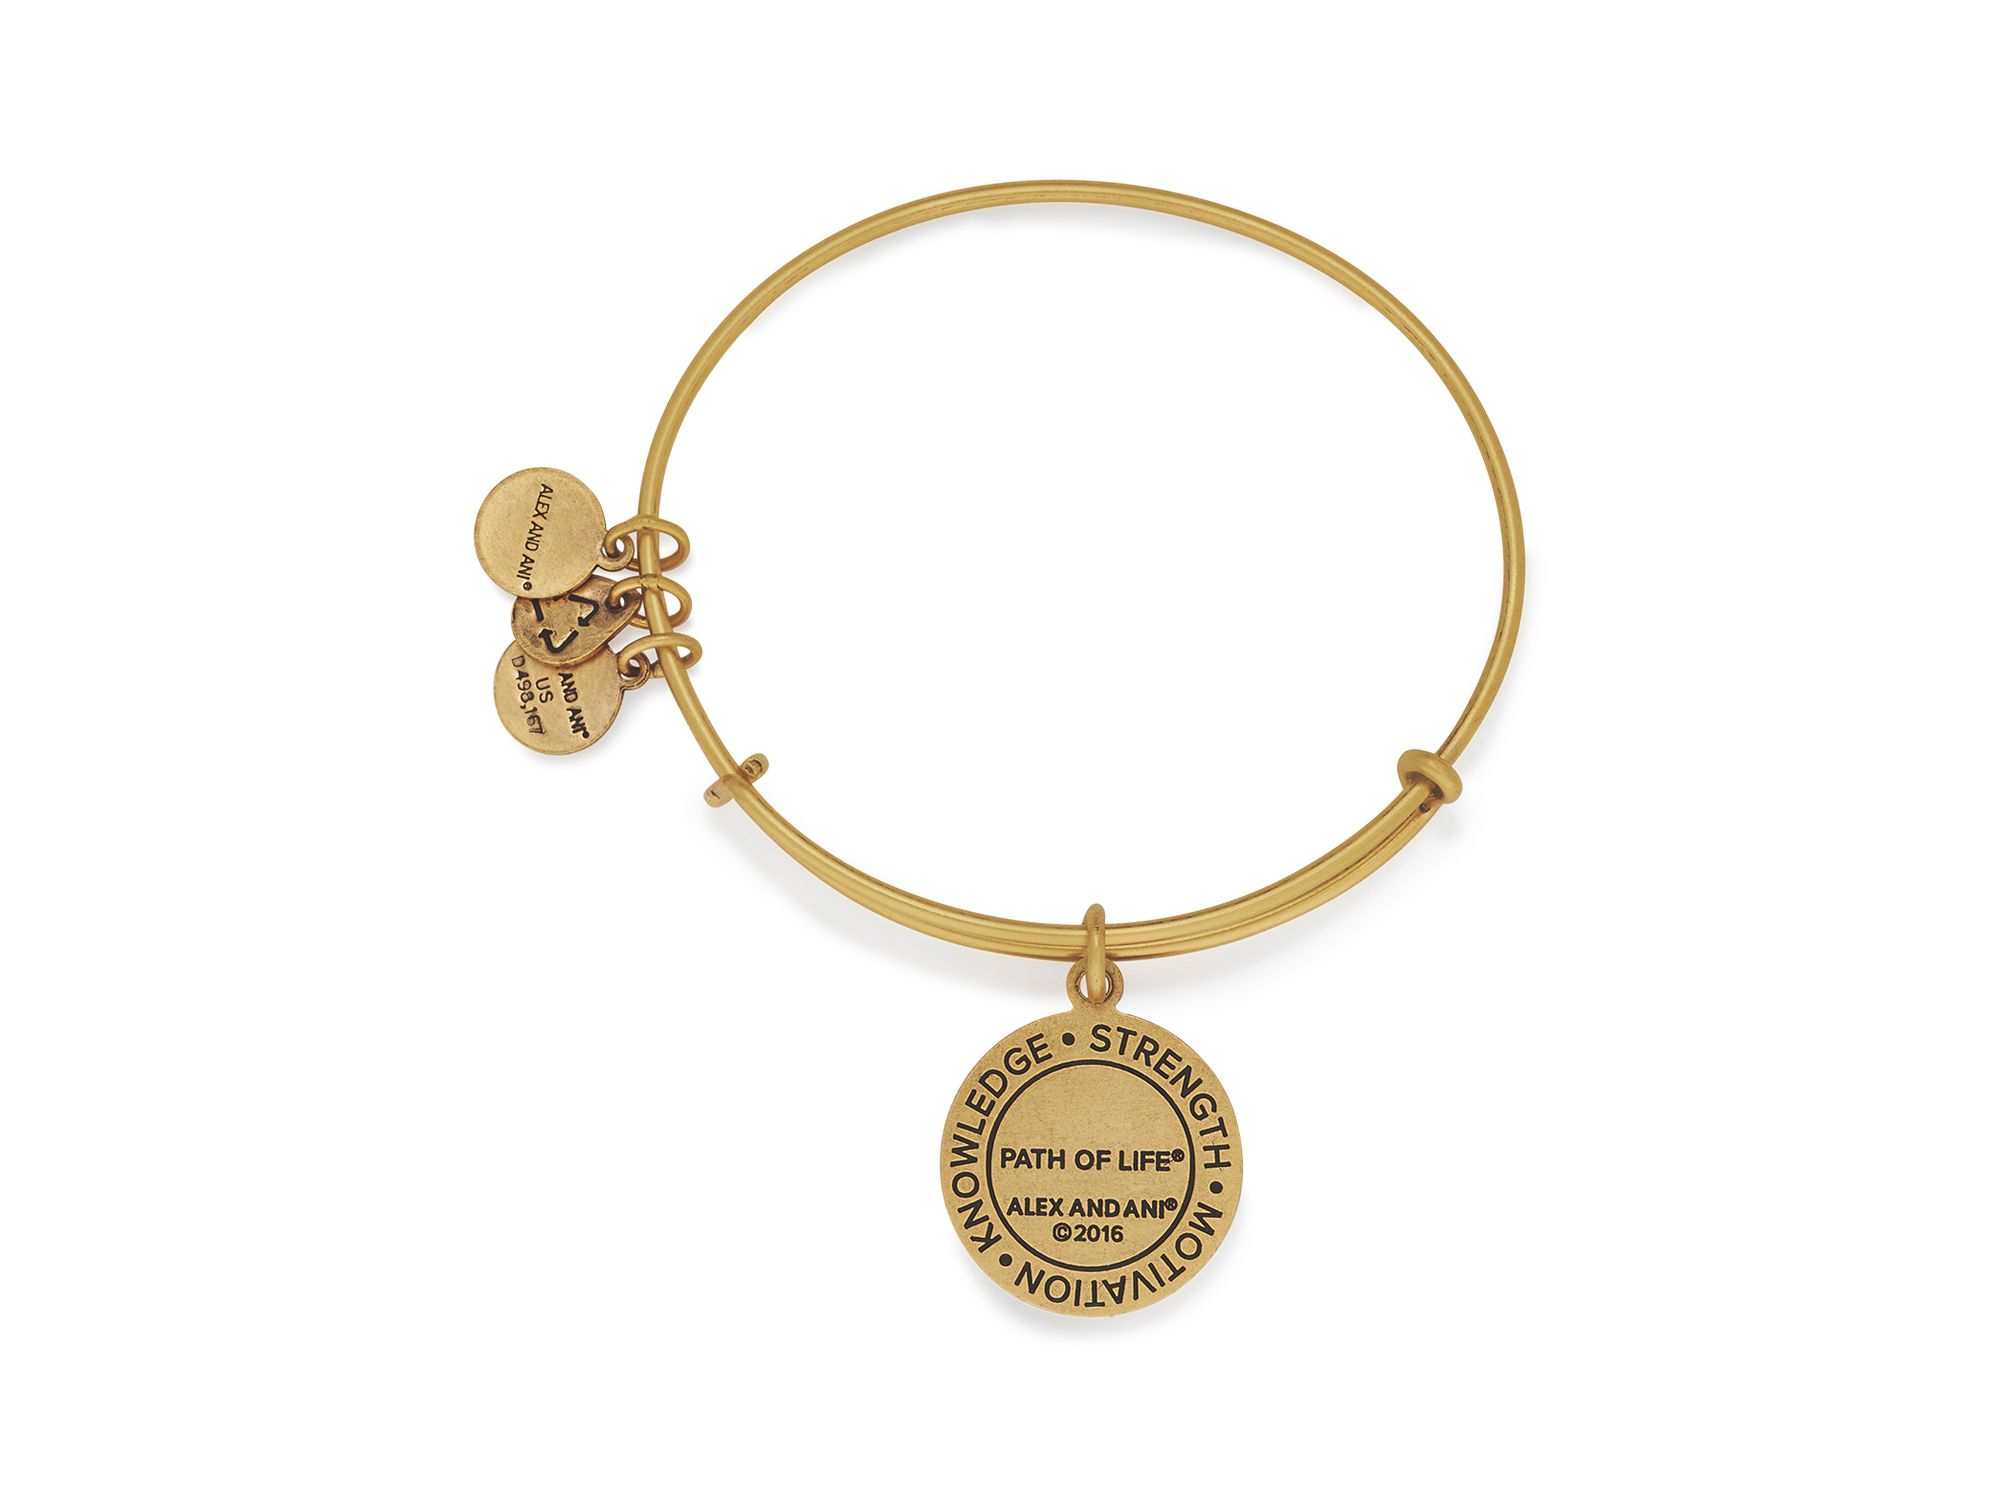 Alex and ani Path Of Life Iii Expandable Wire Bangle in ... Orlando Bloomingdale's